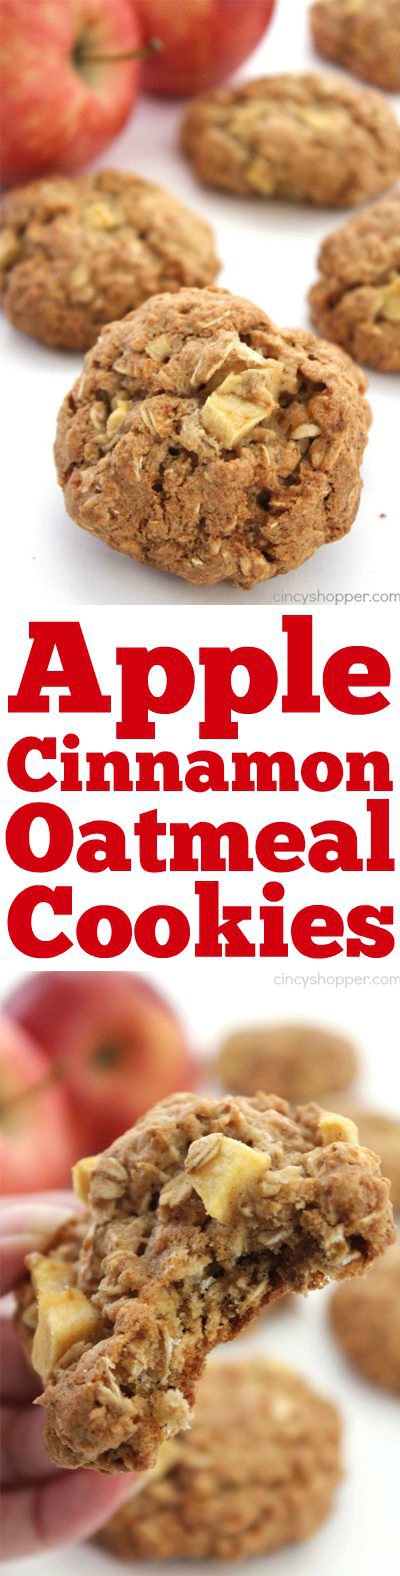 Apple Cinnamon Oatmeal Cookies- make for the perfect fall dessert or even an on the go breakfast.